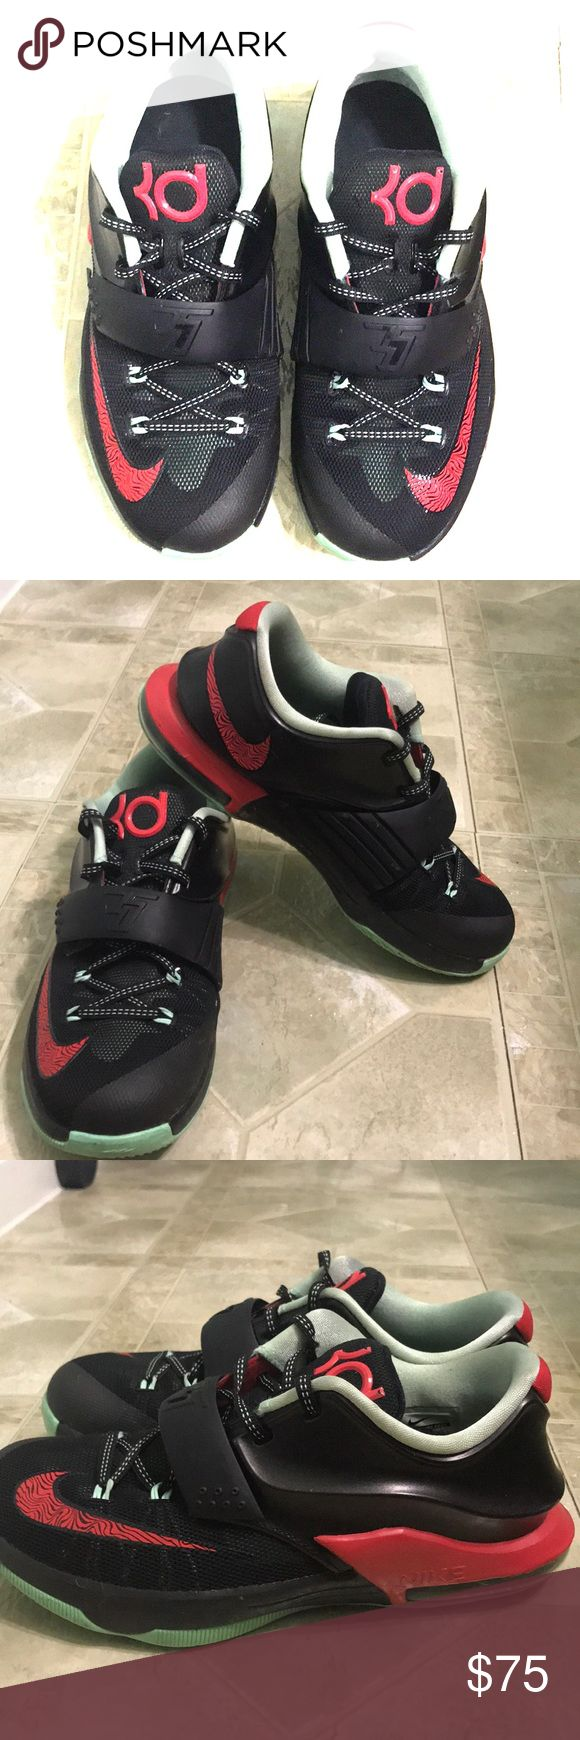 KD 7 Bad Apple Limited Edition Release date 10/04/2014 Black/Action Red - Medium mint Nike Shoes Athletic Shoes